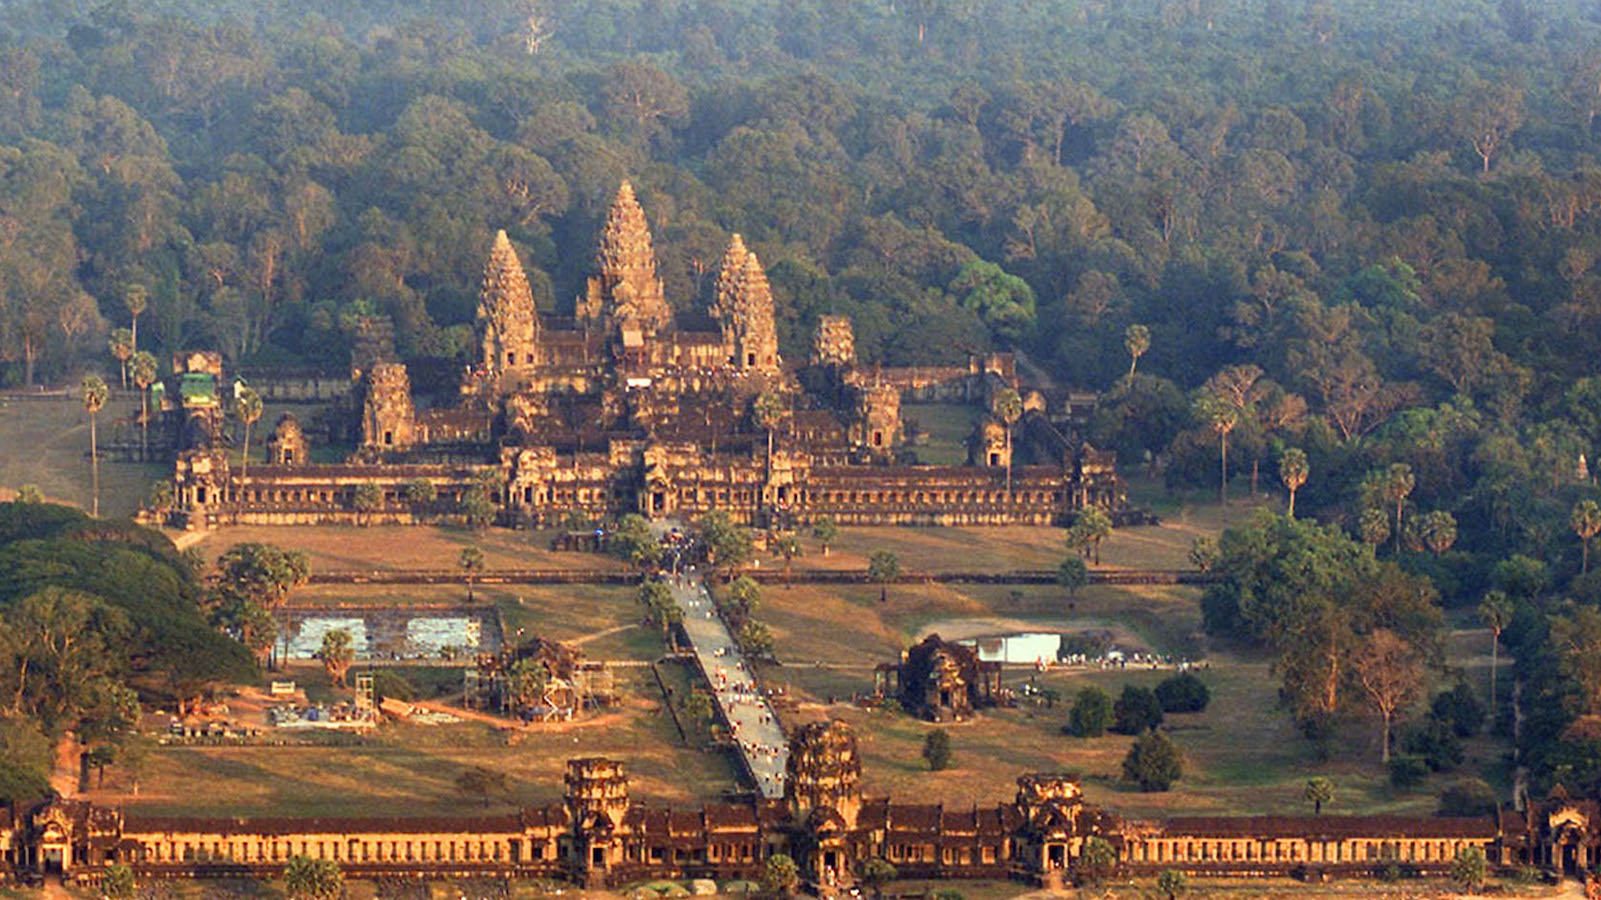 Cambodia's Angkor Wat temple basks in evening sunlight on January 12, 2003, viewed from a new tethered air balloon on January 12, 2003, some 200 metres (655 feet) above the Angkor Wat temples in northwest Cambodia. The vast 800-year-old temple complex is the jewel in the crown of the war-ravaged southeast Asian nation's nascent tourism industry, which attracted some 800,000 visitors in 2002 - a total which could rise to 2.2 million by 2006 if government forecasts are to be believed. Picture taken January 12, 2003. REUTERS/Chor Sokunthea  CS/RCS - RTRGGRQ